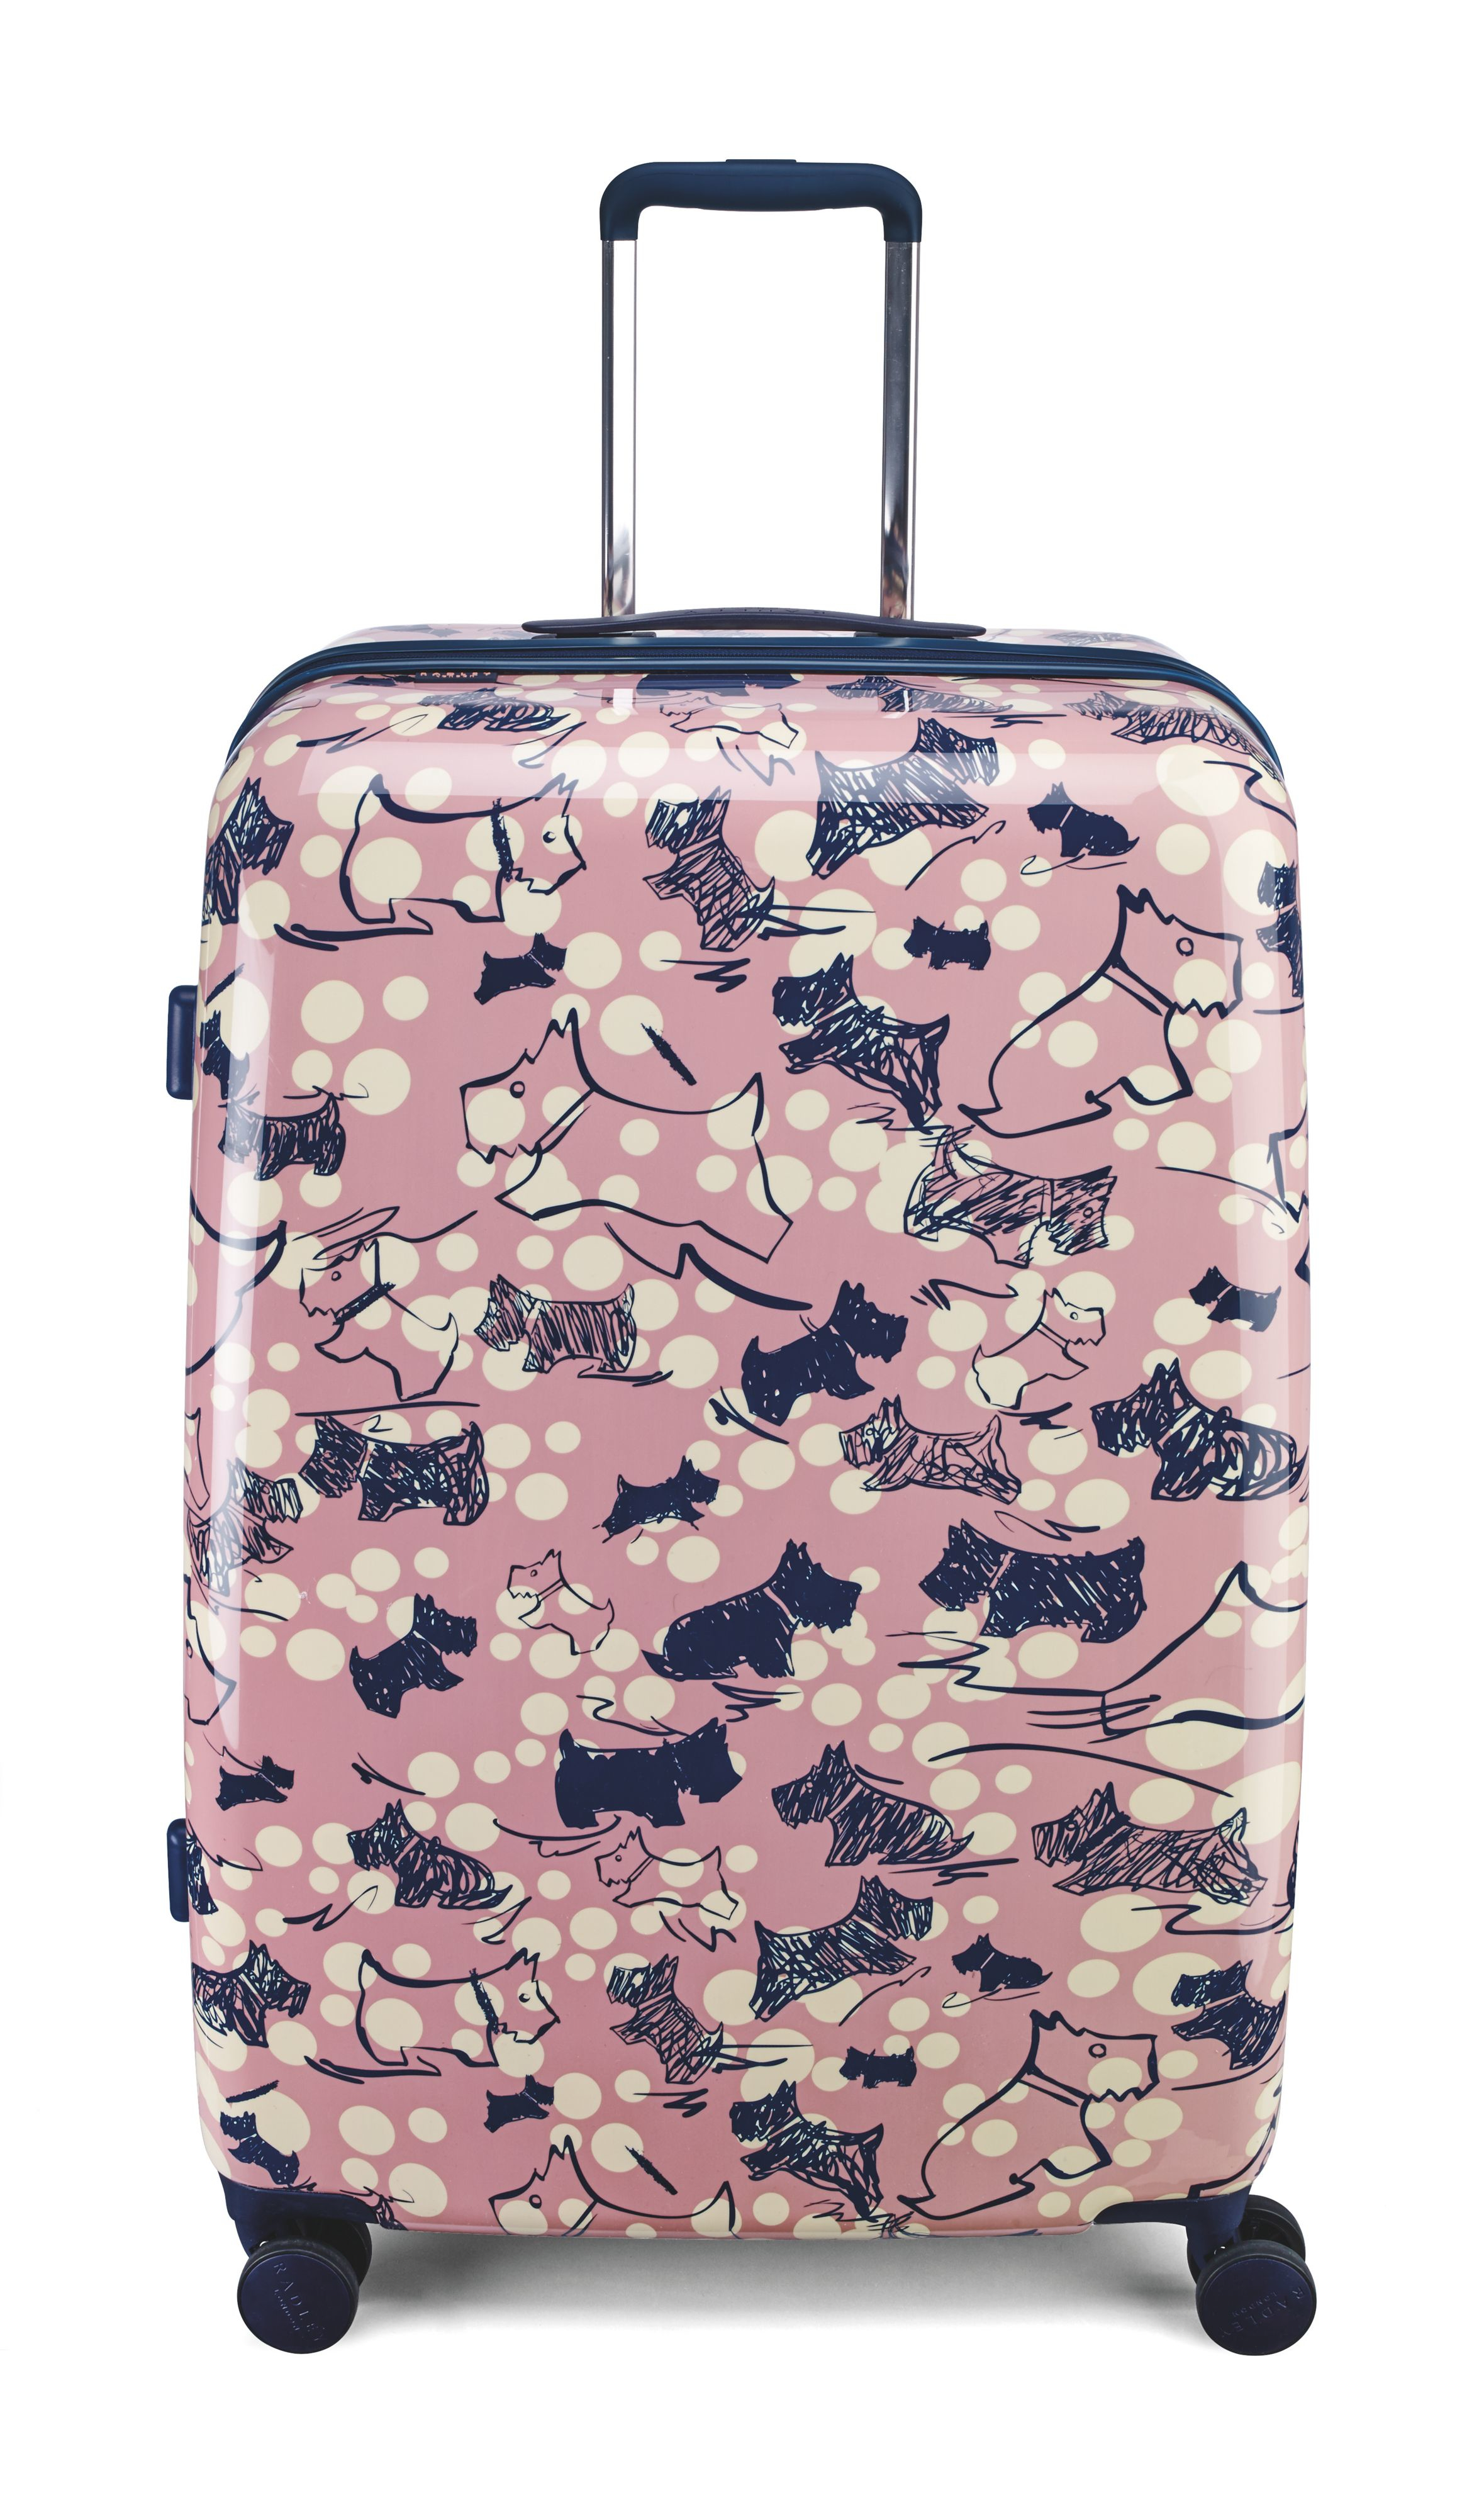 Radley Cherry Blossom Dog 4 Wheel Large Suitcase In Pink